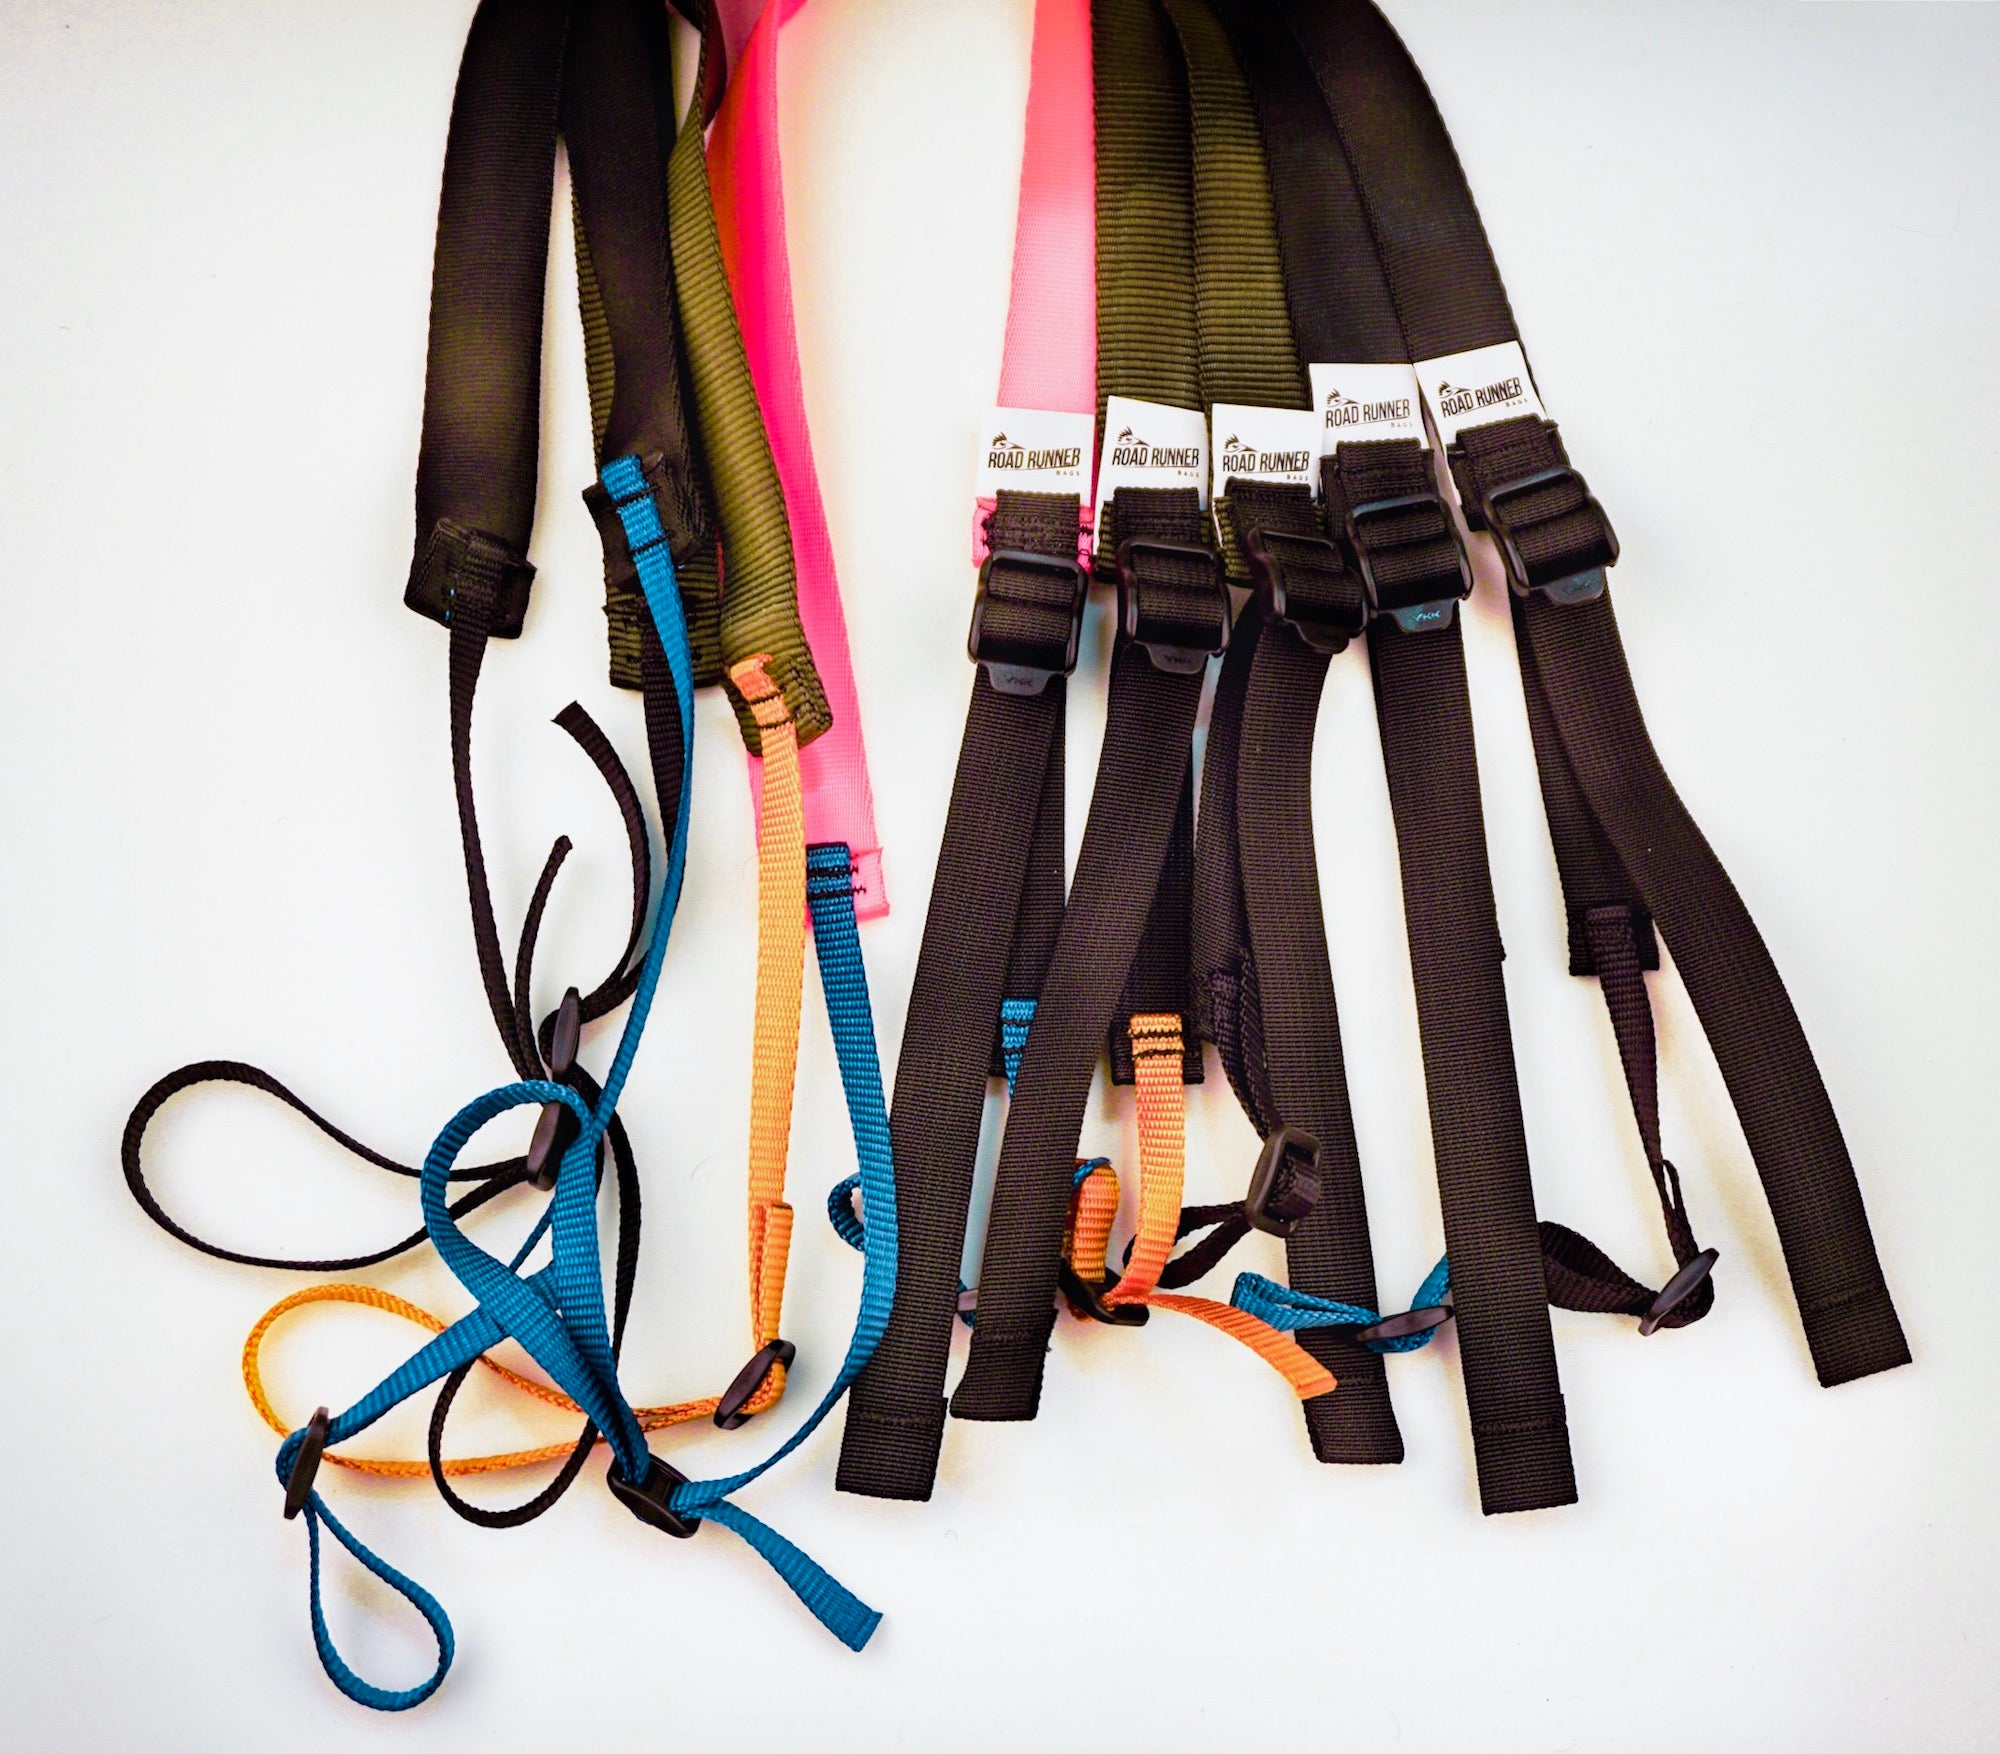 Road Runner Bags Camera Strap for Point and Shoot Cameras